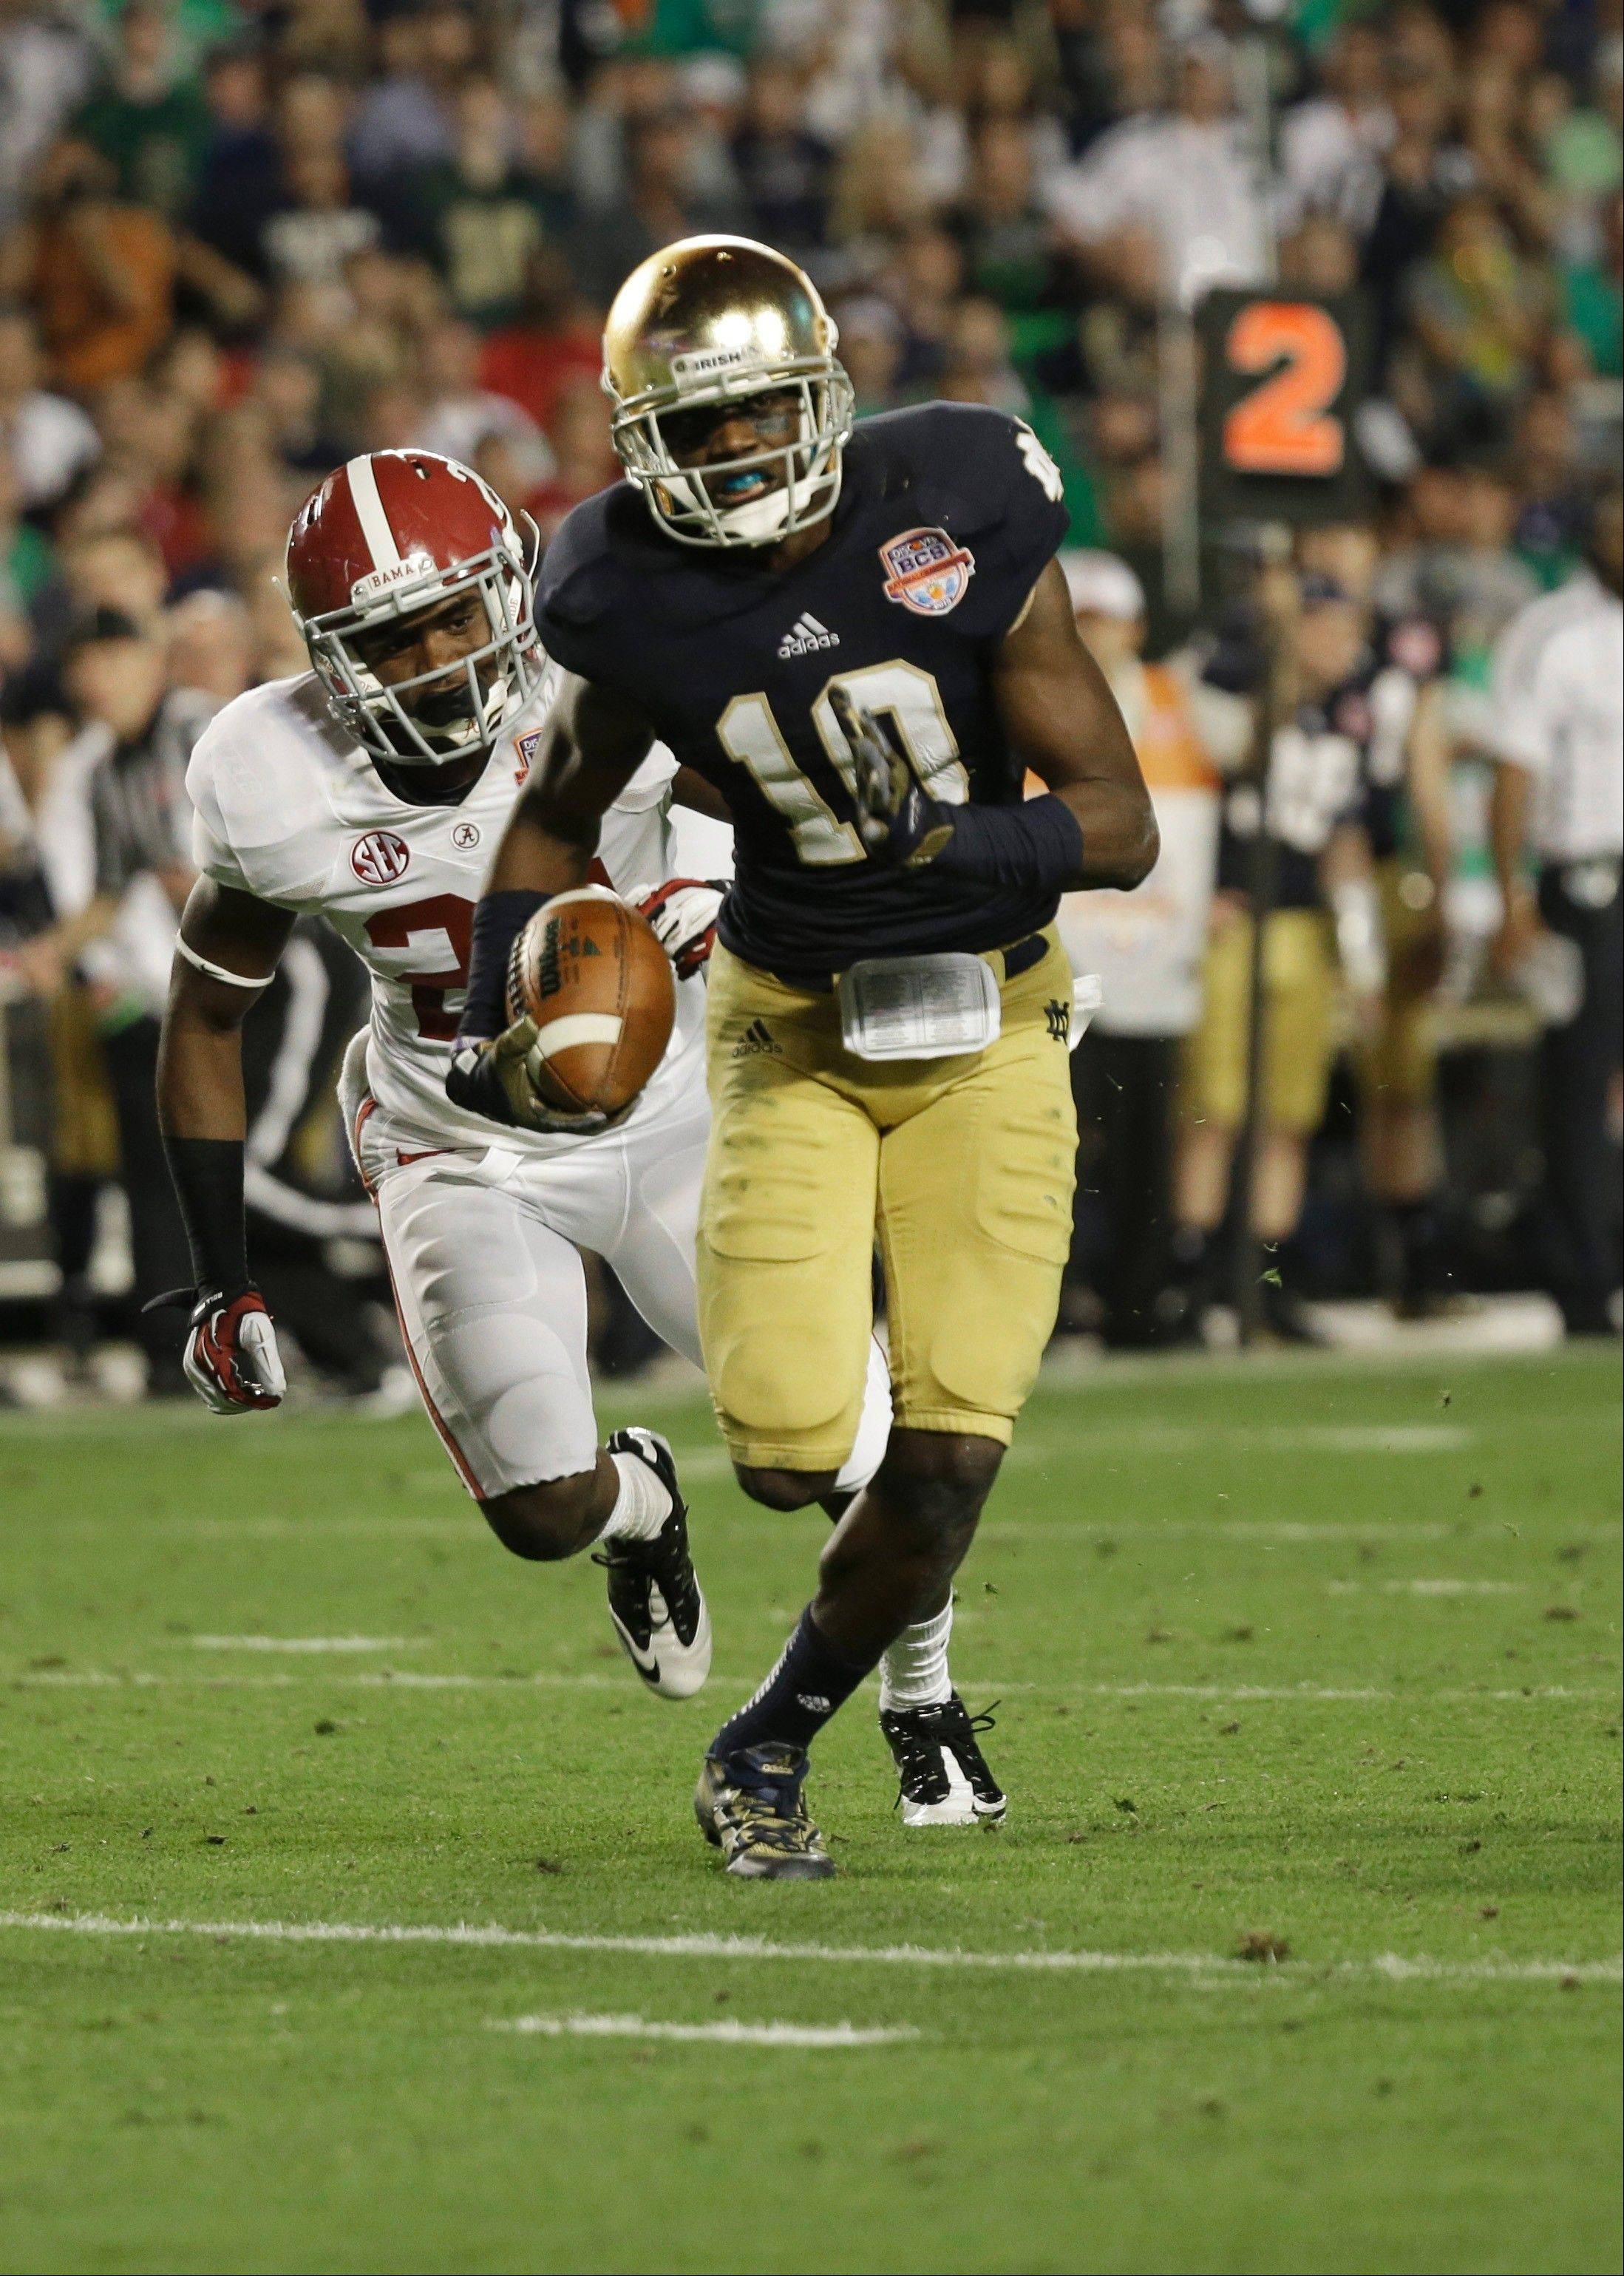 Notre Dame wide receiver DaVaris Daniels (10) had more than 100 yards in receptions in the BCS National Championship game last January in Miami. The Vernon Hills High School product should be a key factor in Notre Dame's offense this season.